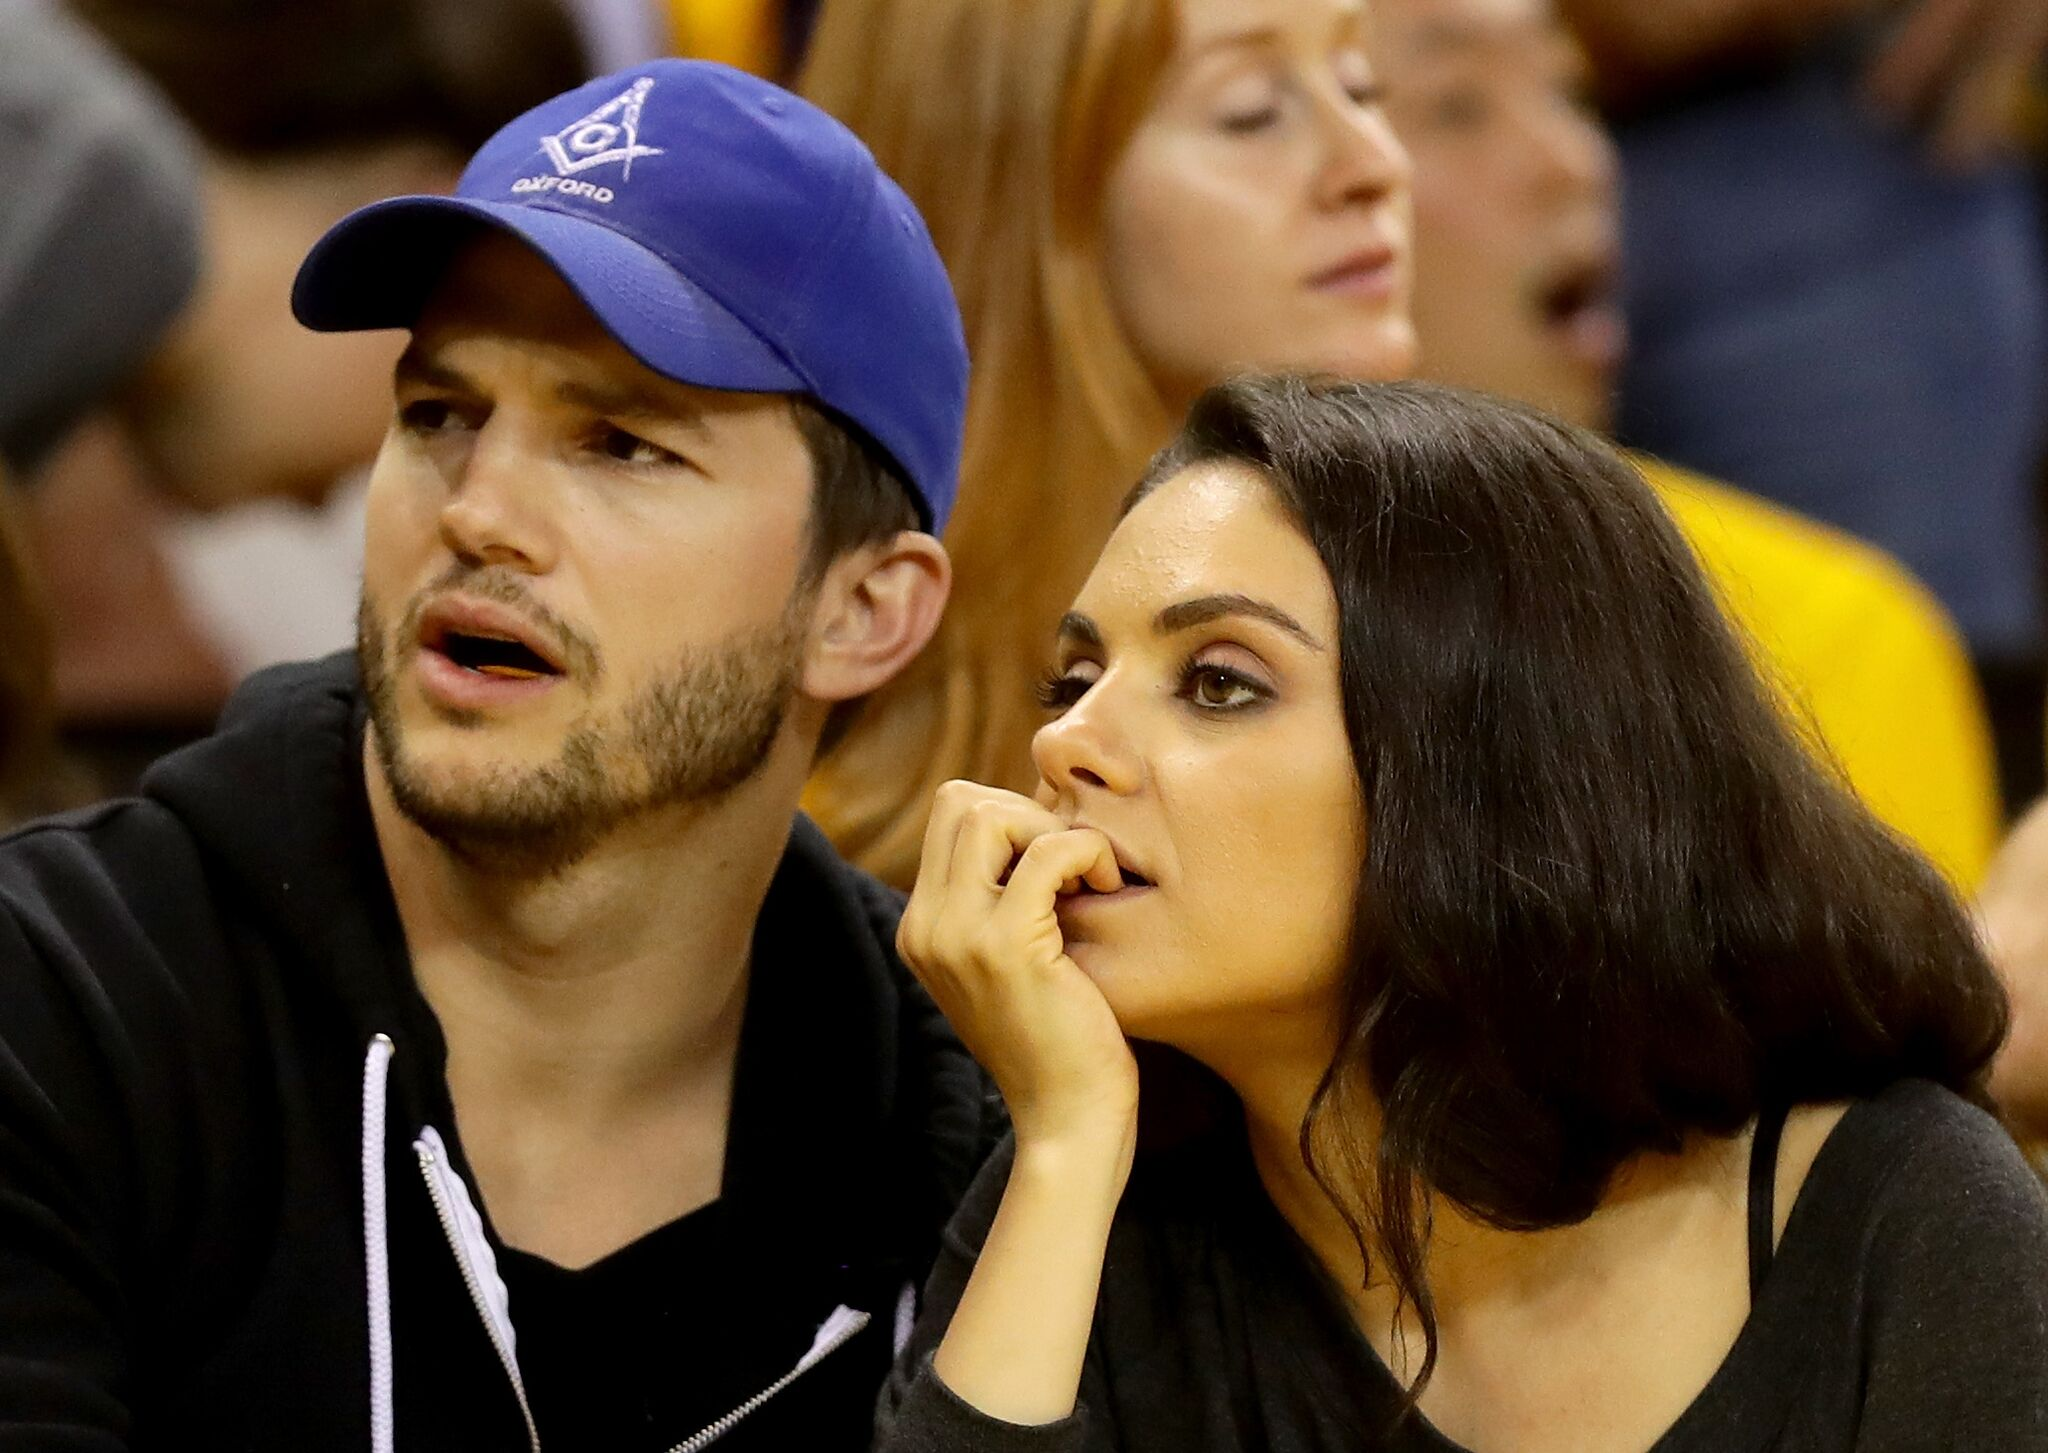 Ashton Kutcher und Mila Kunis, 2016 | Quelle: Getty Images